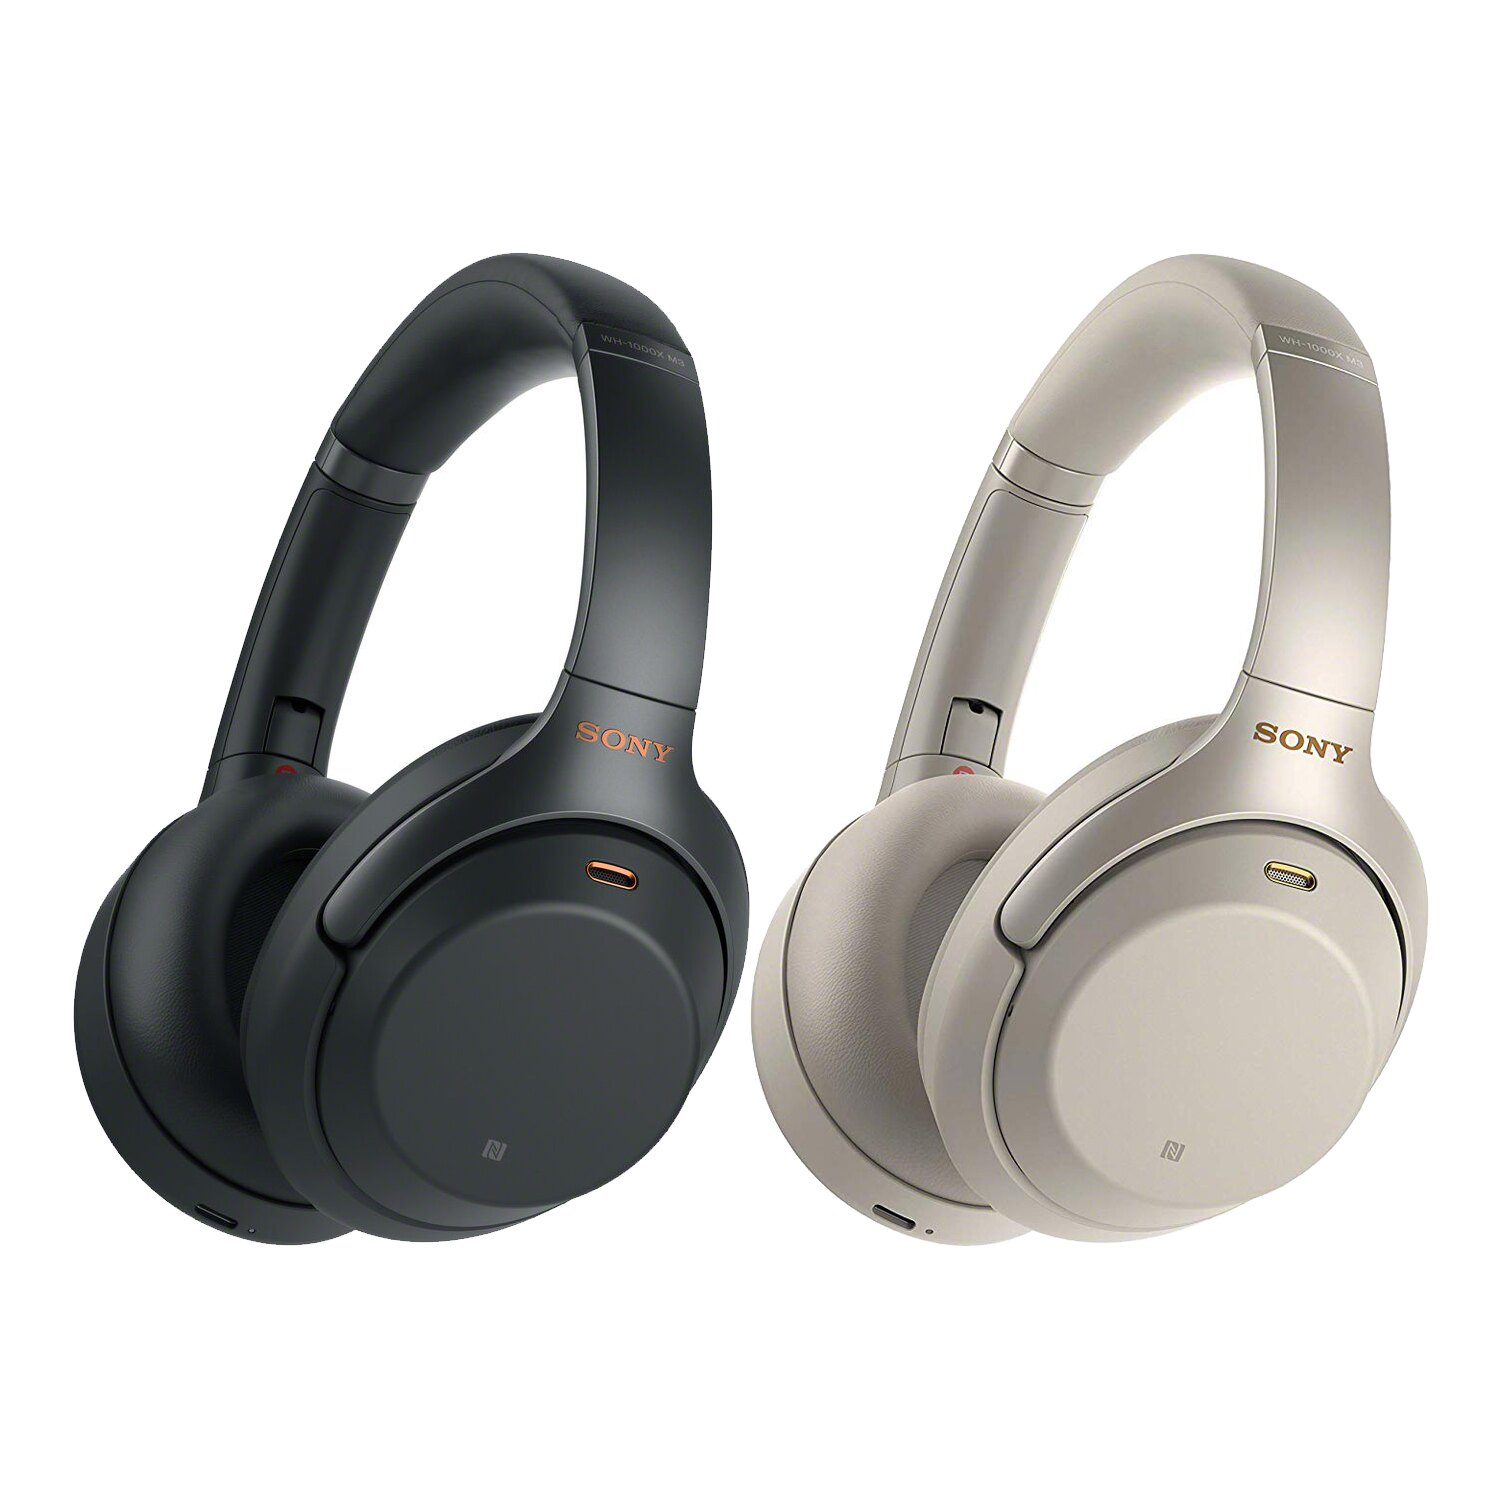 Sony WH1000XM3 Over-Ear Bluetooth Headphones only $237.96